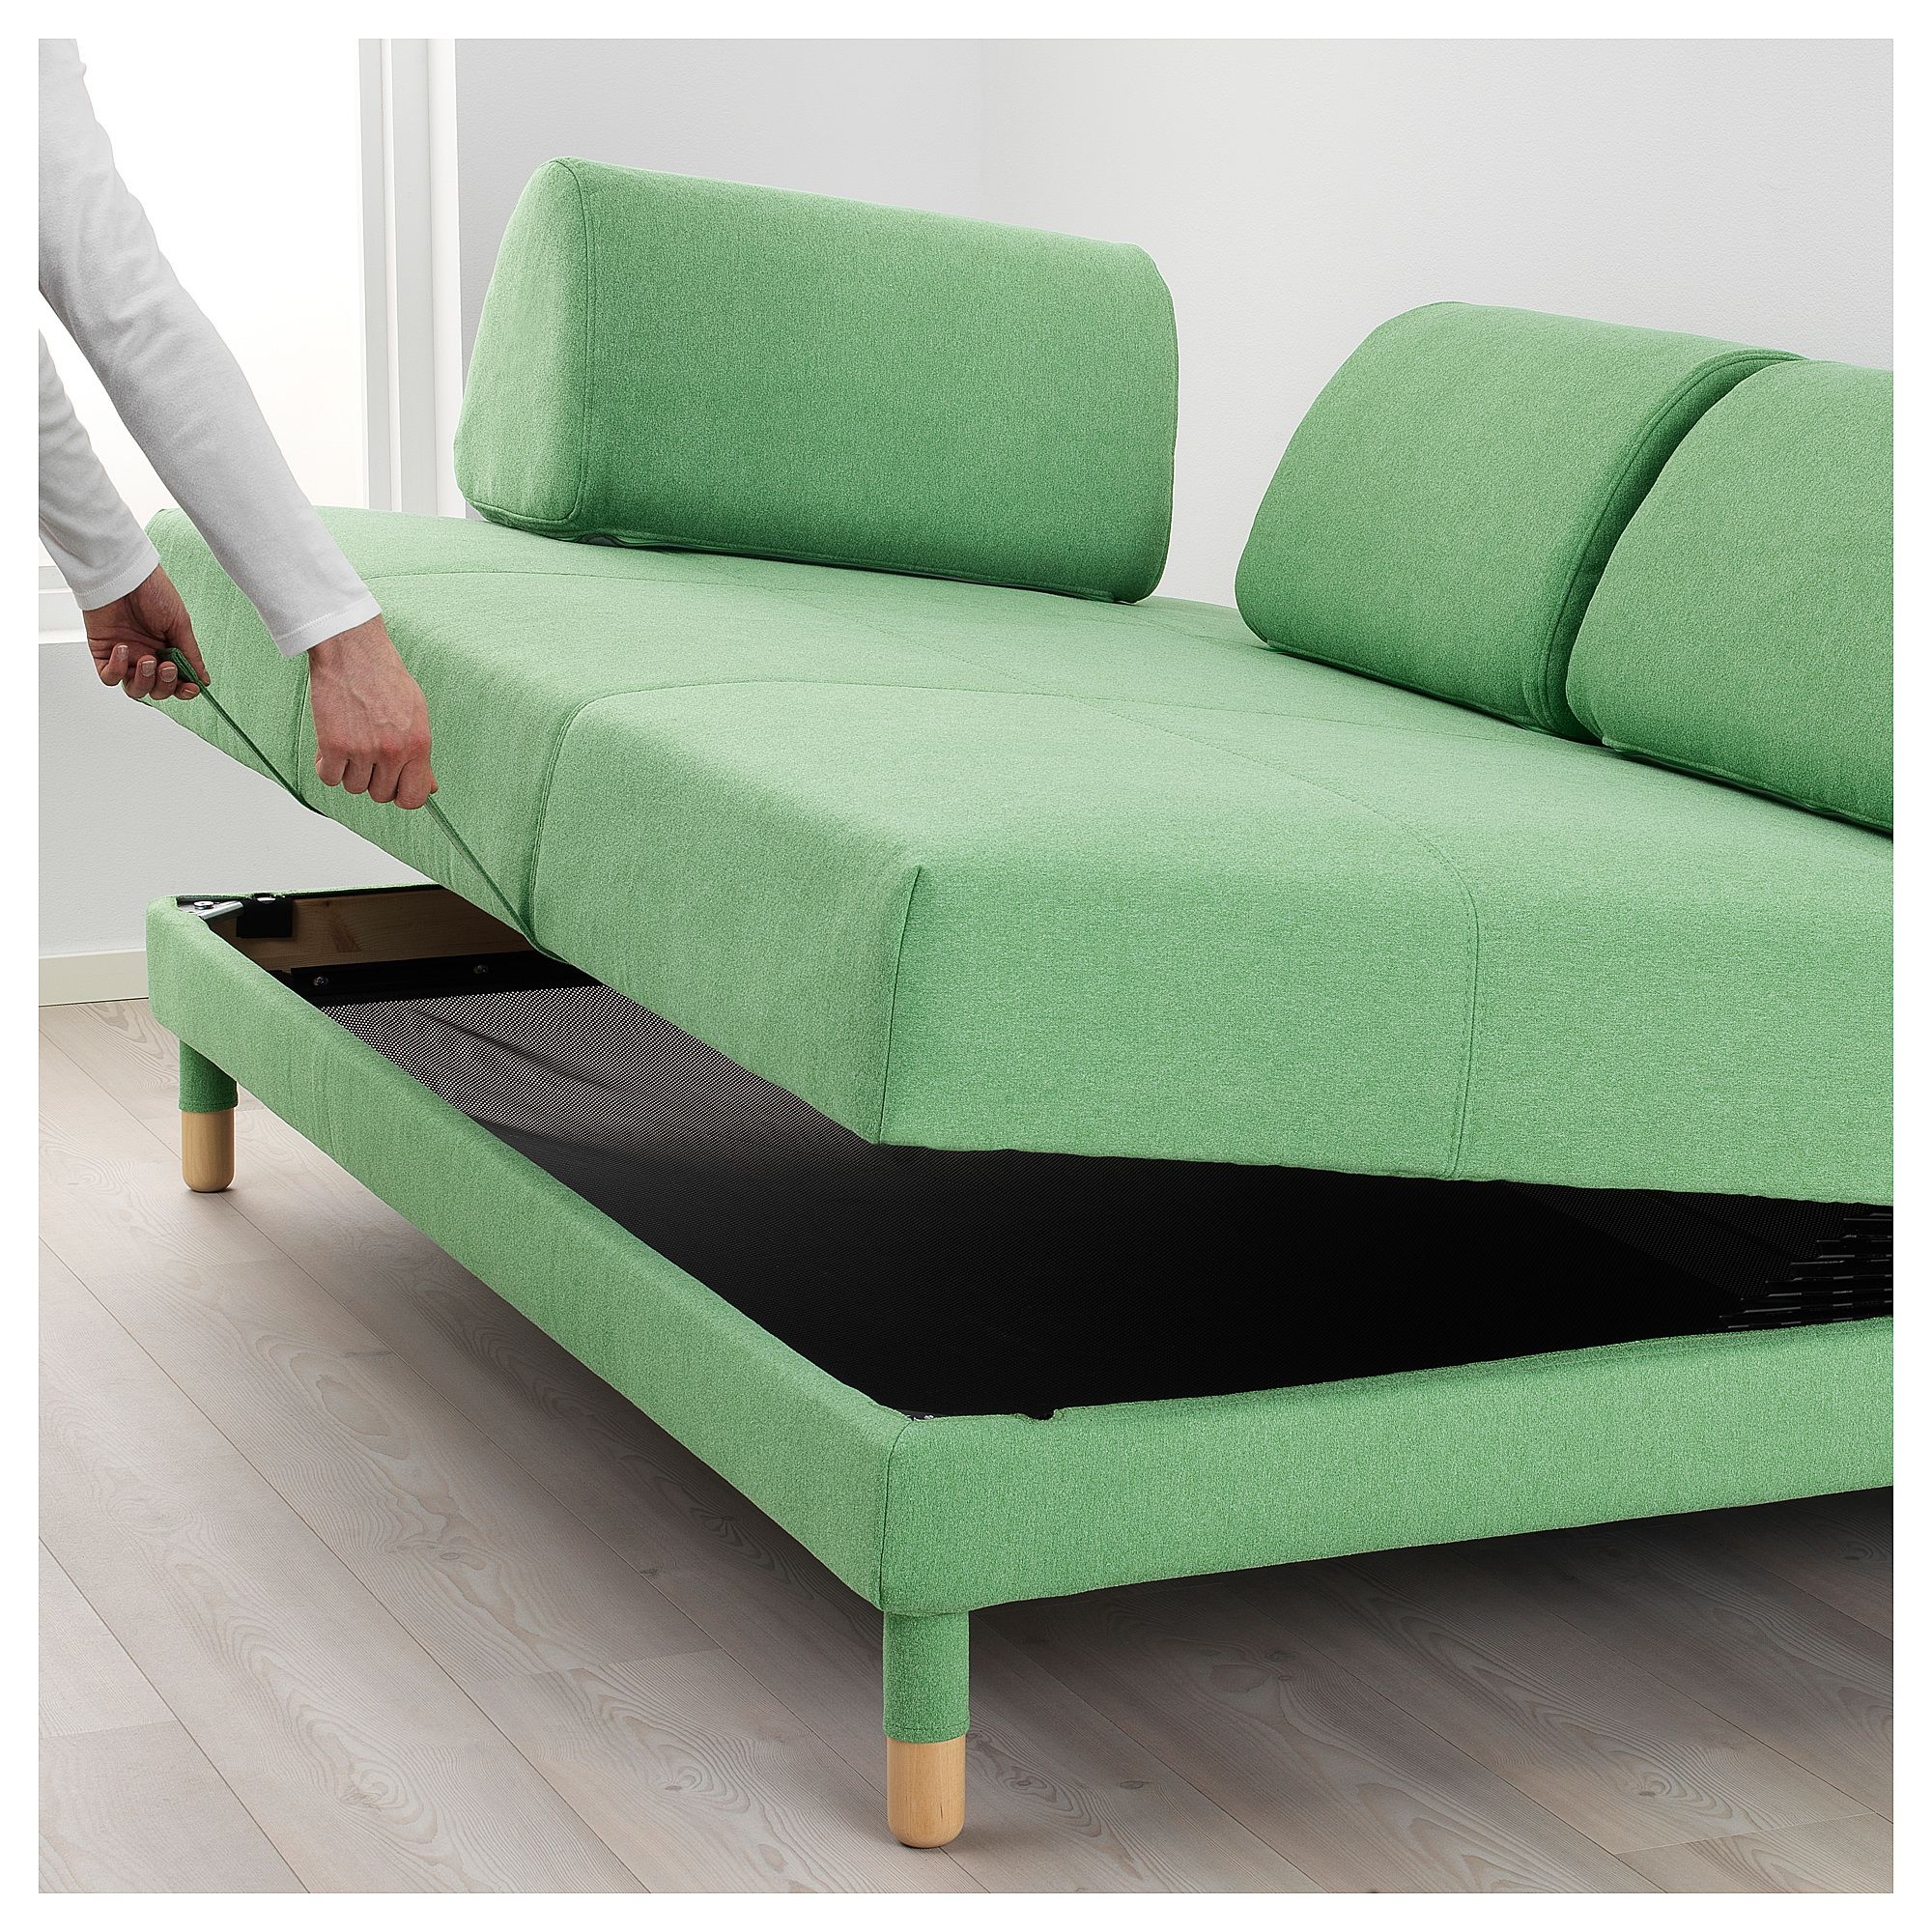 Flottebo Sofa Bed Lysed Green Bedrooms # Muebles Pikeando